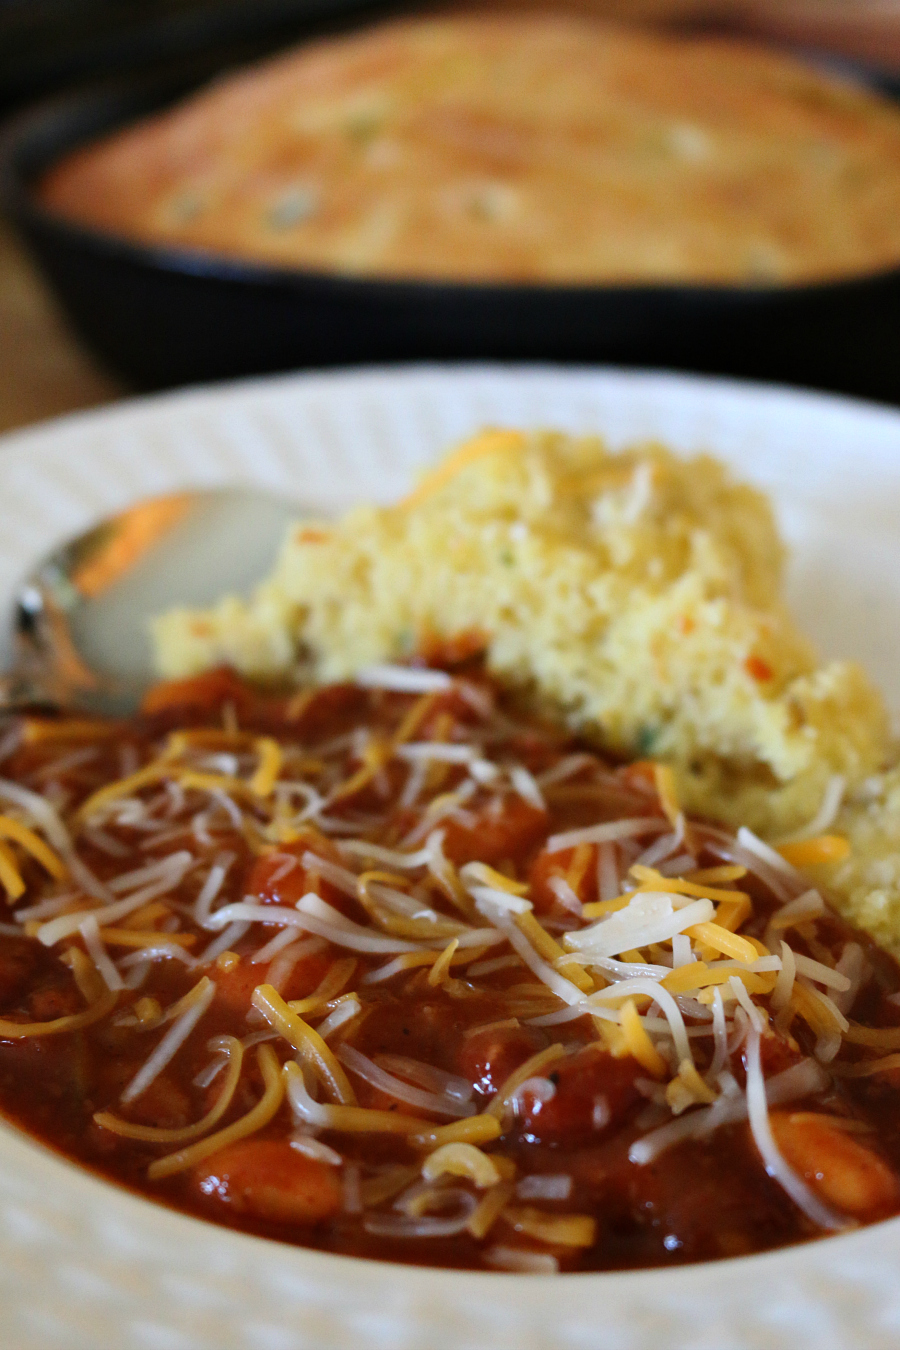 A Southwestern Turkey Chile and Cornbread CeceliasGoodStuff.com | Good Food for Good People